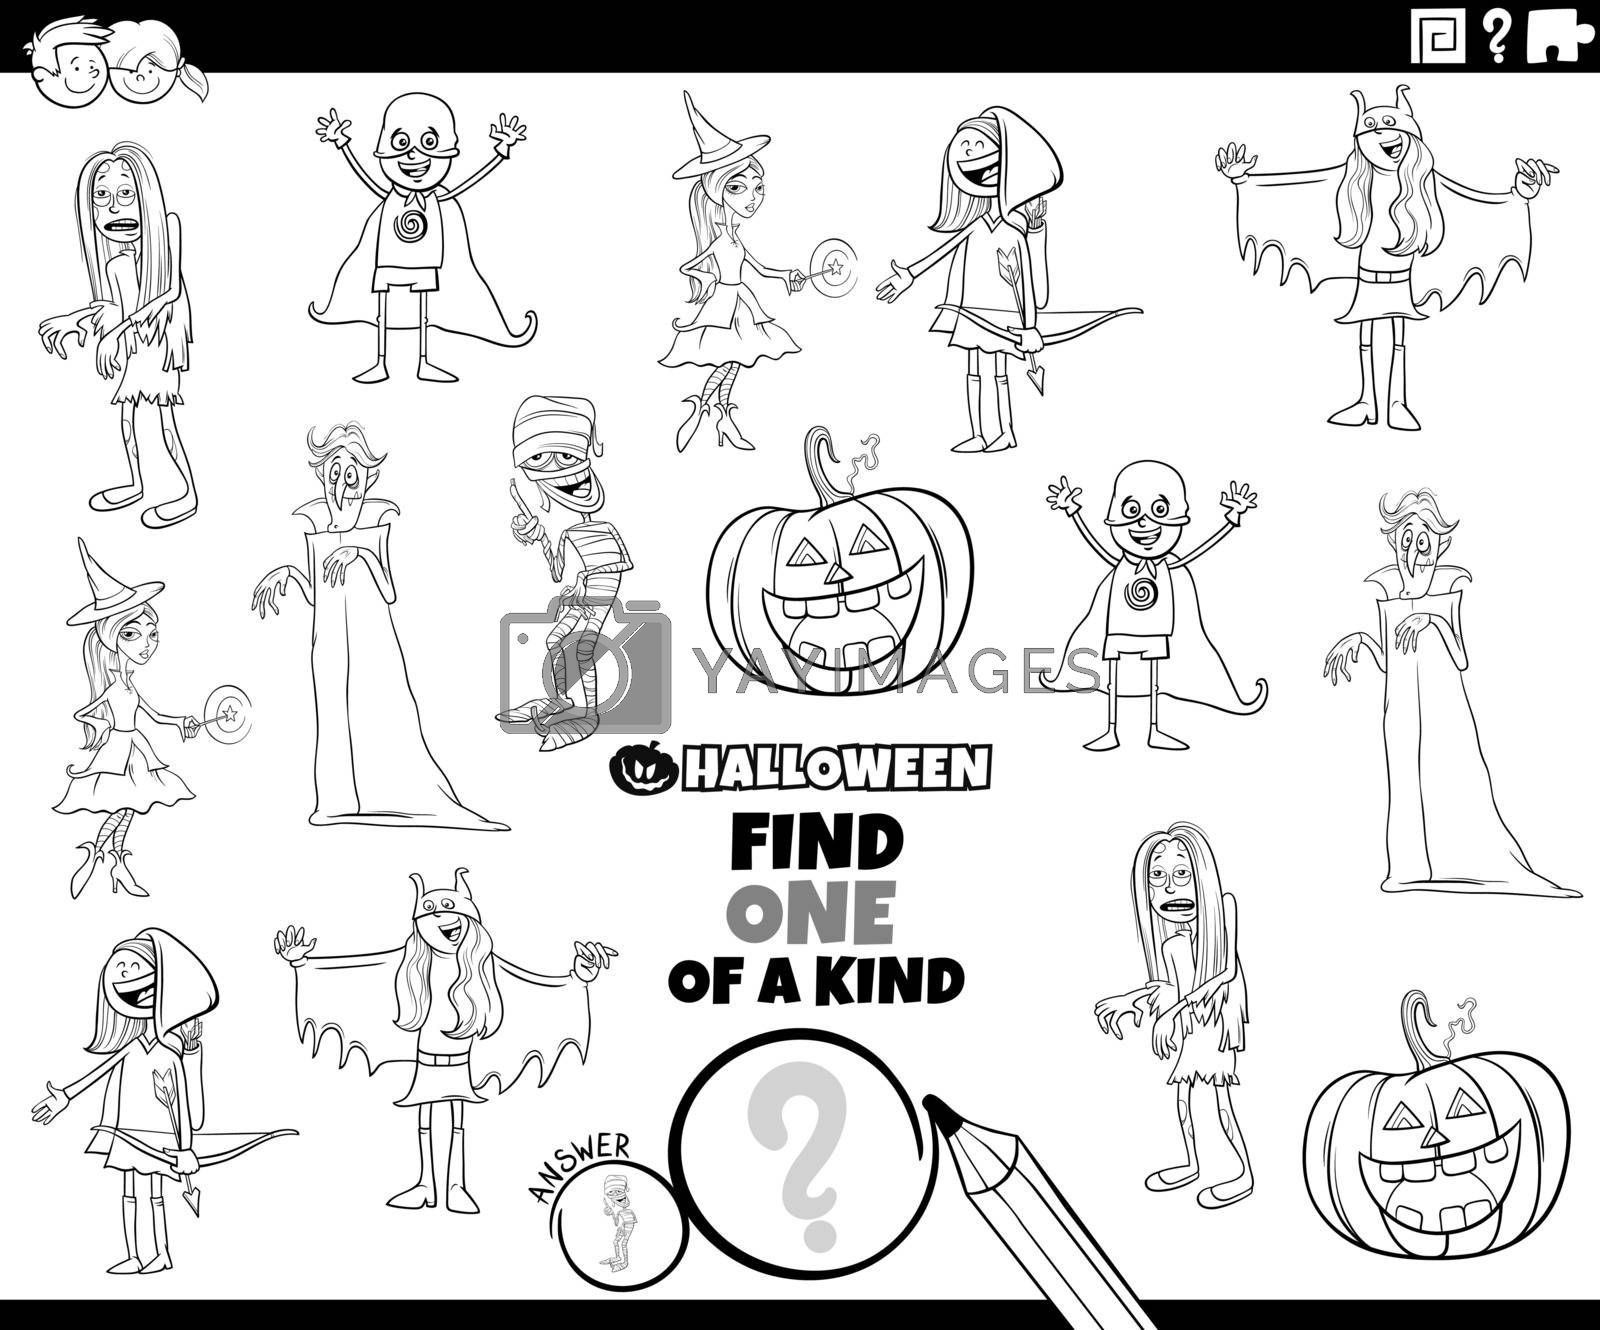 Black and White Cartoon Illustration of Find One of a Kind Picture Educational Game with Comic Halloween Holiday Characters Coloring Book Page